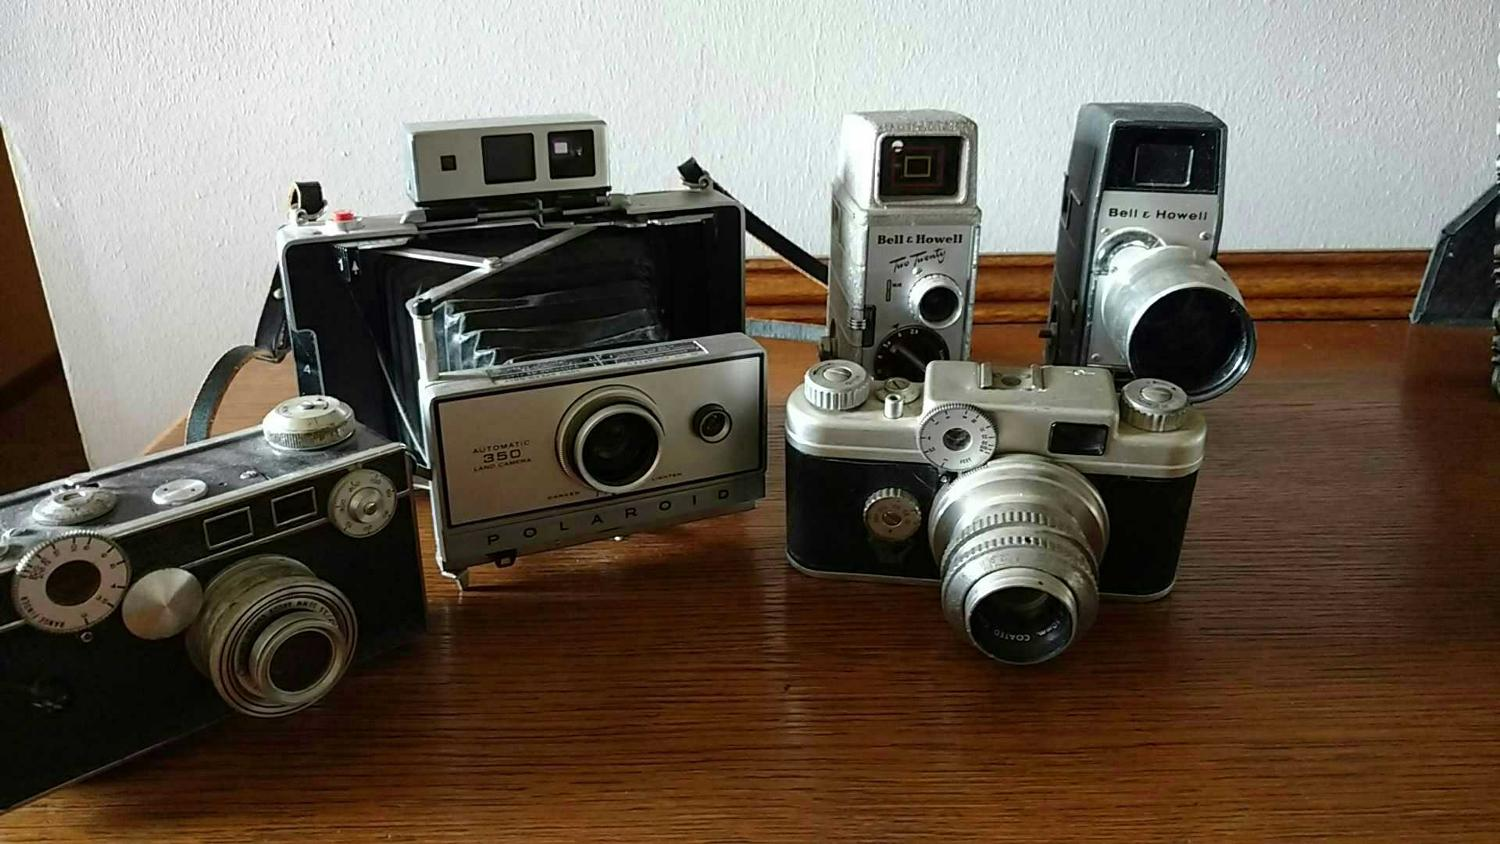 best old cameras and movie cameras for sale in fishers indiana for 2019. Black Bedroom Furniture Sets. Home Design Ideas